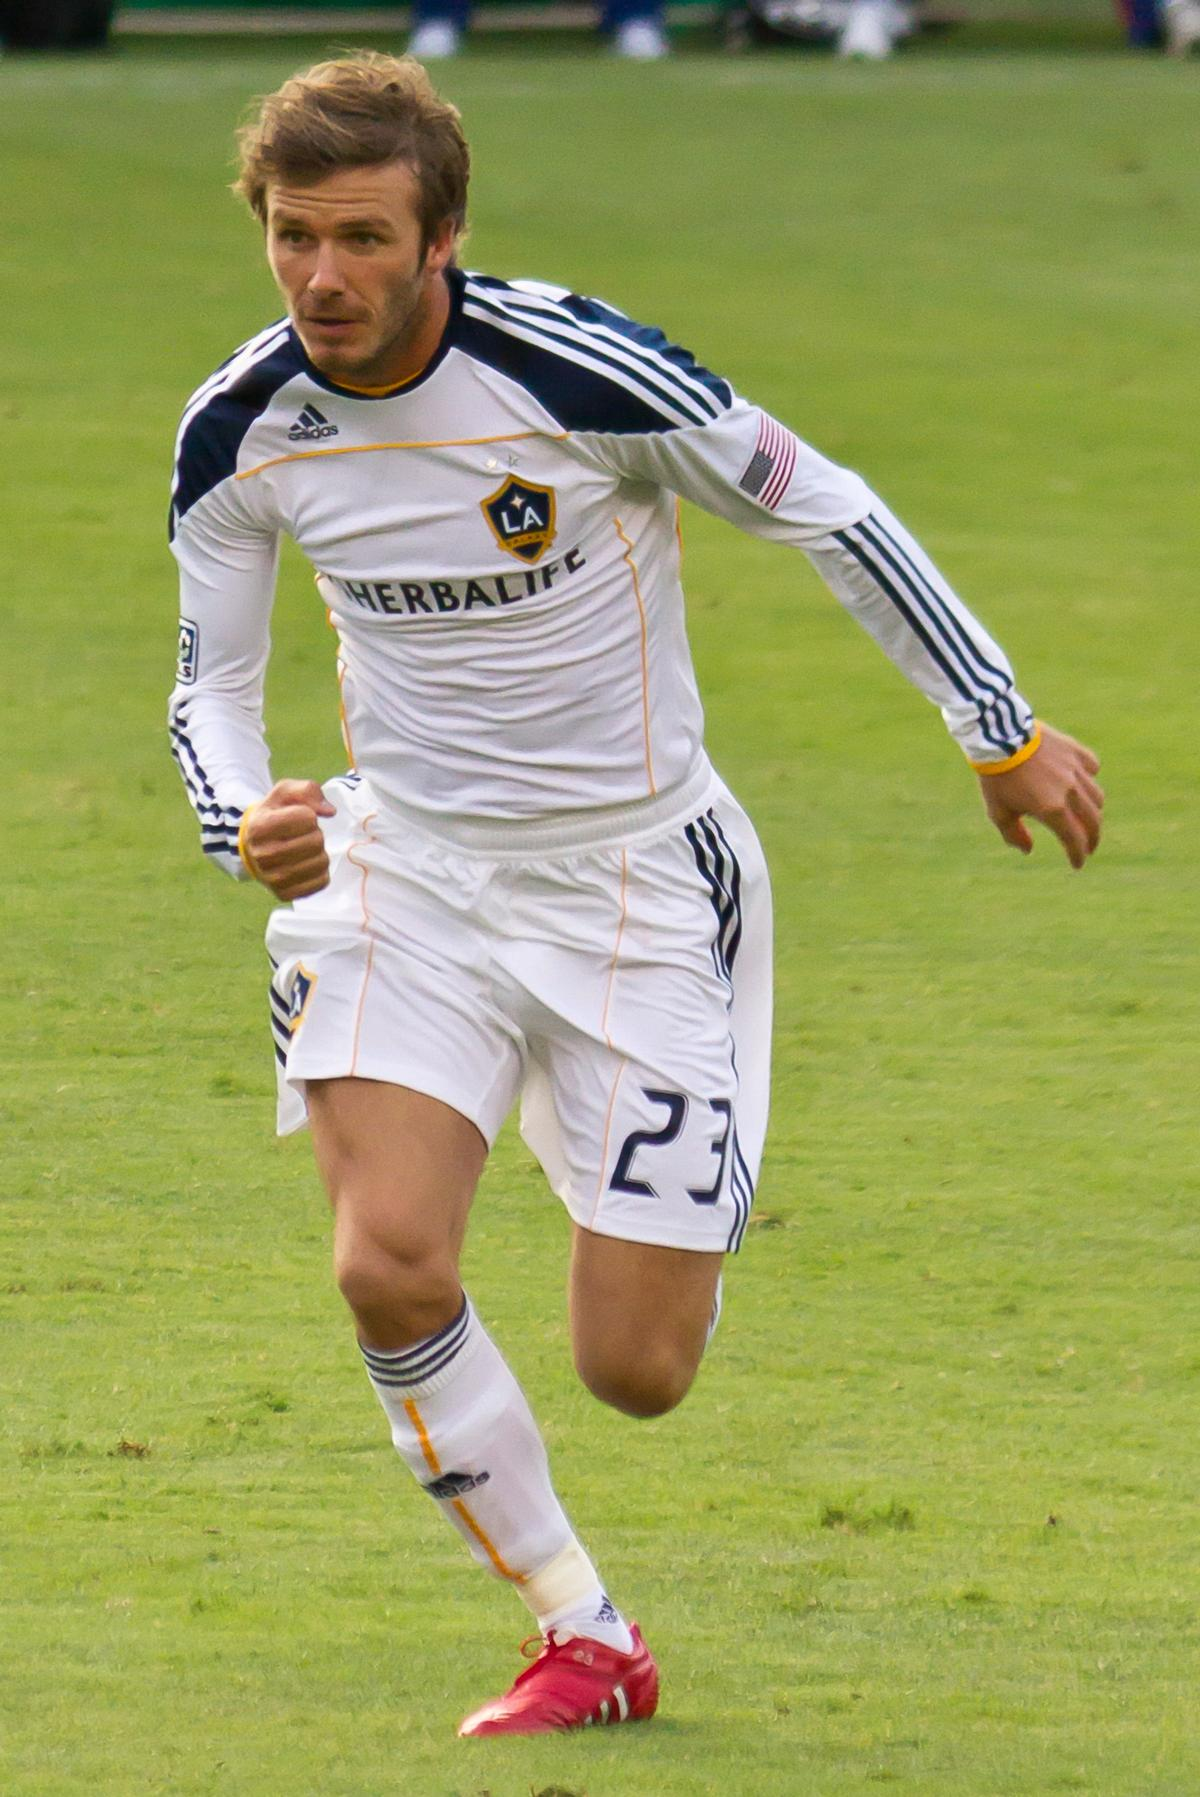 Beckham received an option to own an expansion team at a discounted franchise fee, as part of an agreement with MLS when he signed for LA Galaxy as a player in 2007 / Wiki Commons